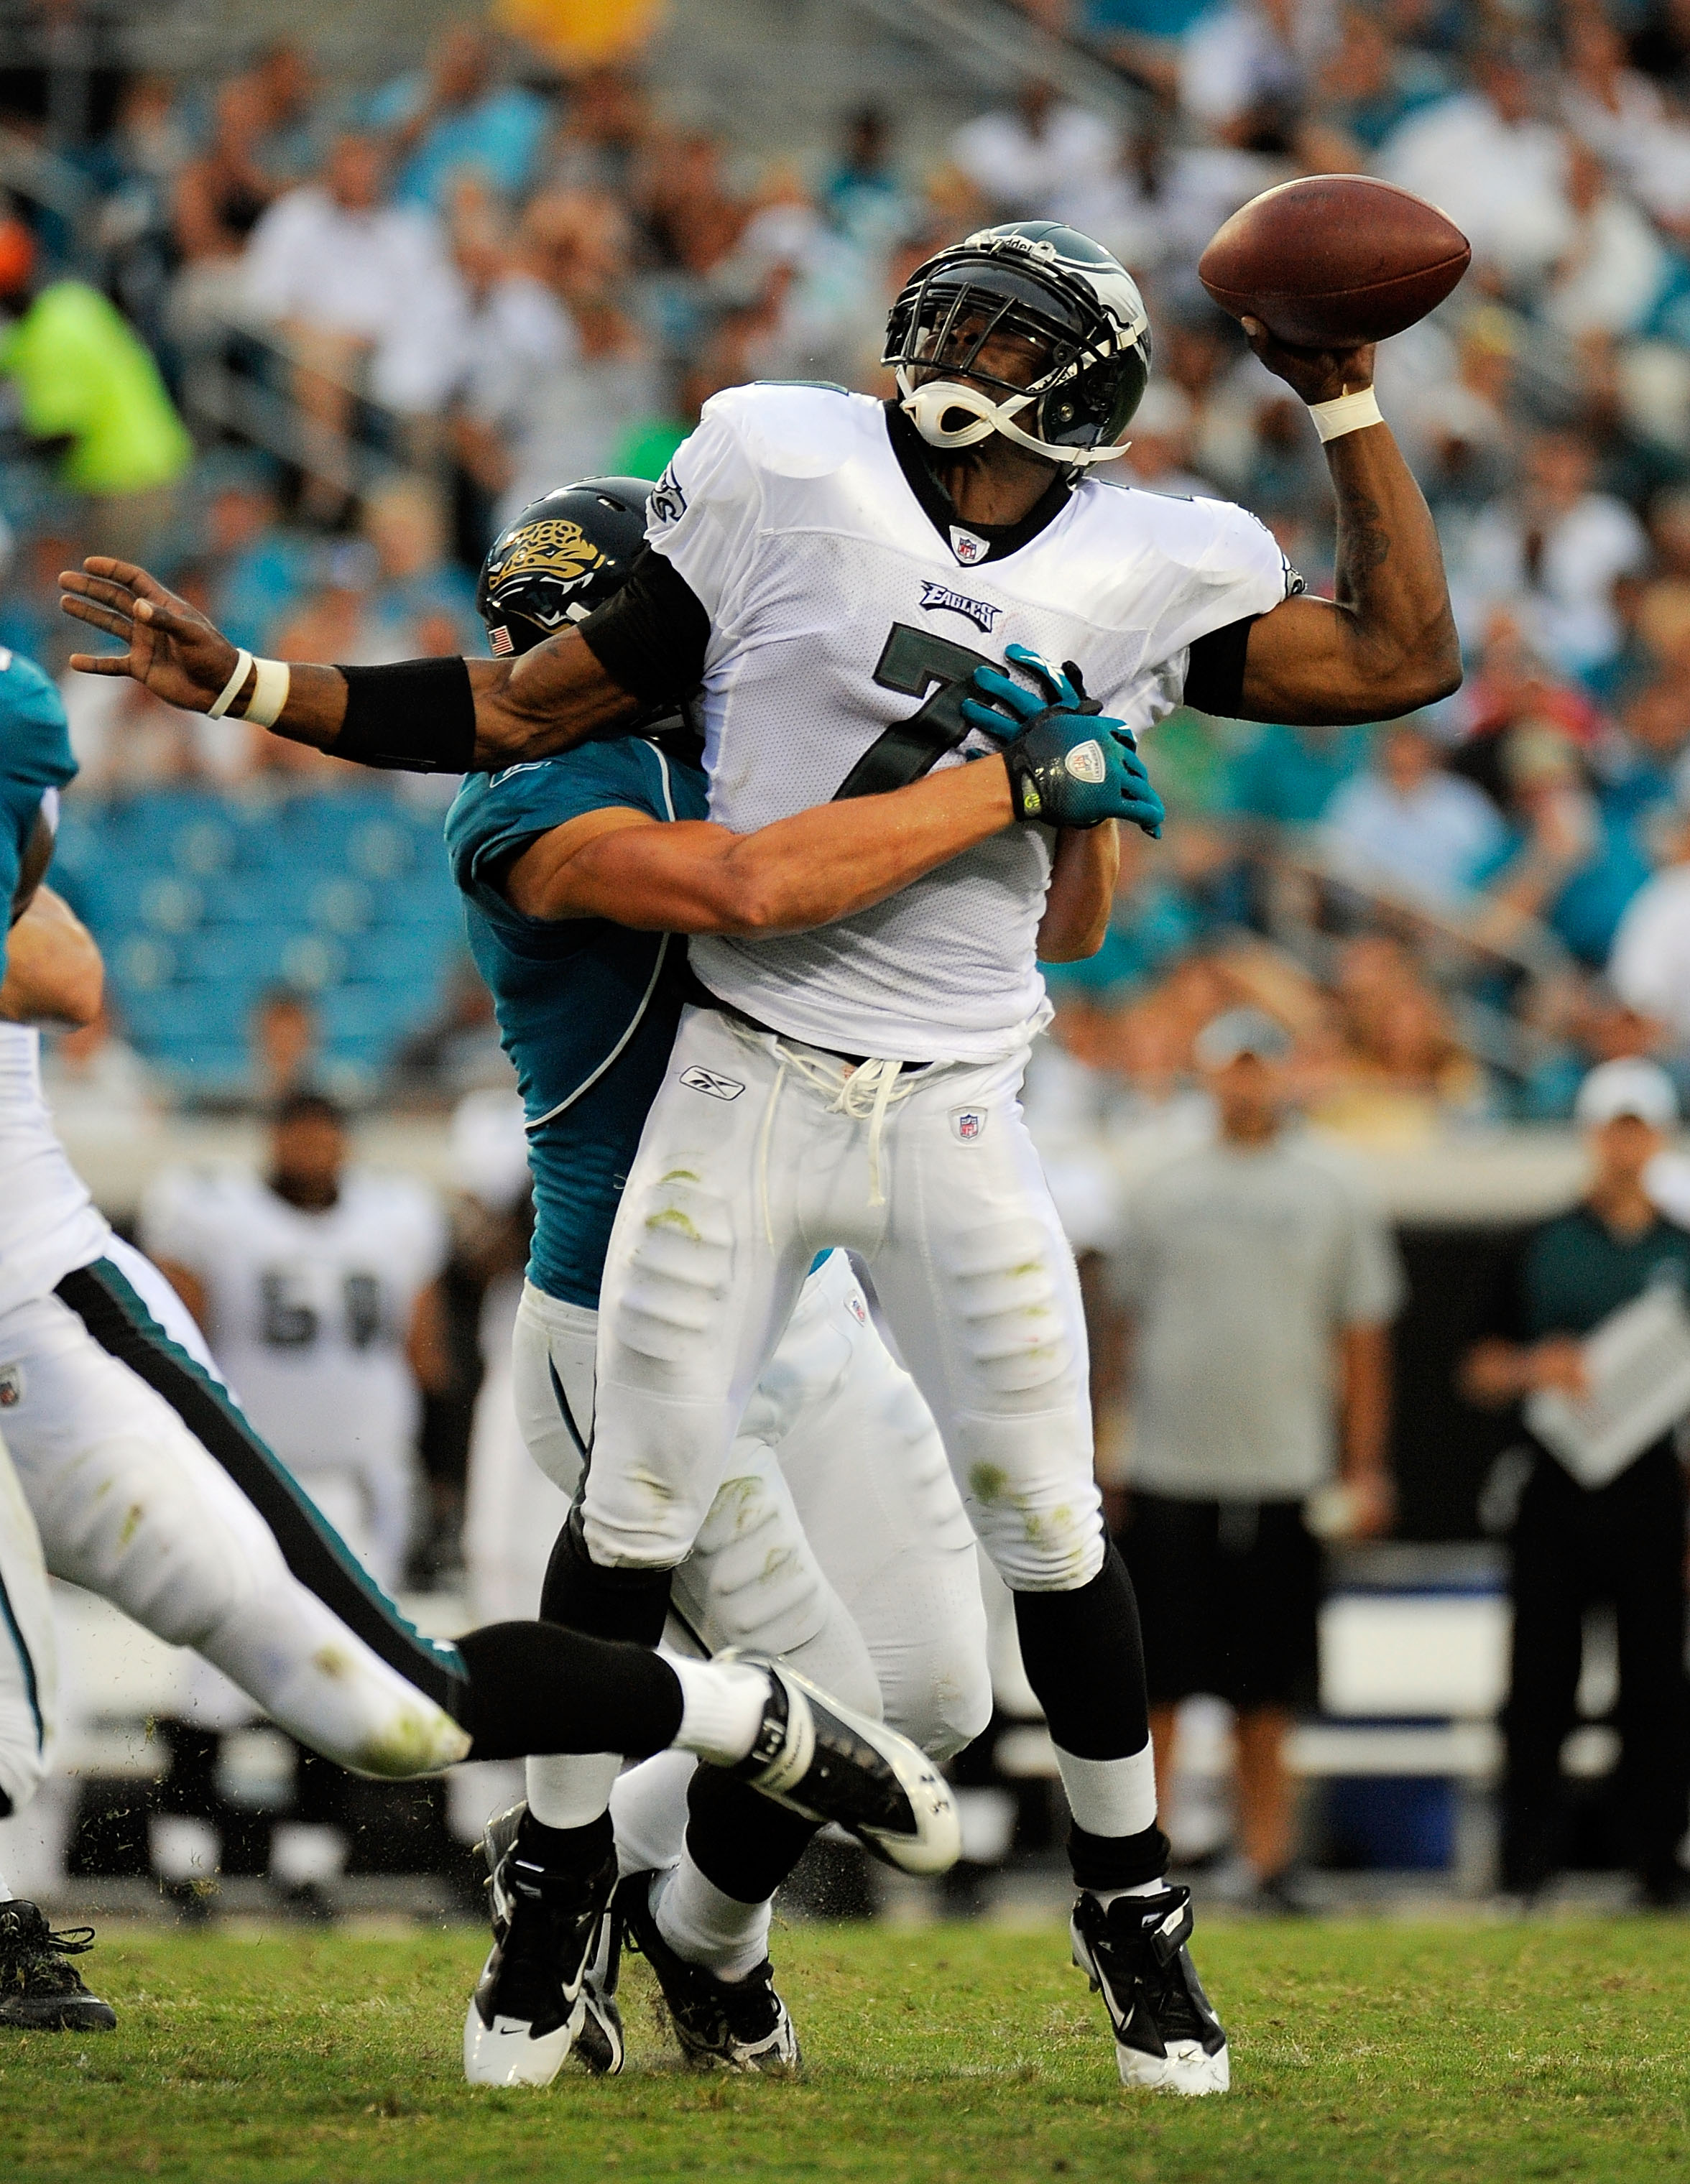 JACKSONVILLE, FL - SEPTEMBER 26:  Quarterback Michael Vick #7 of the Philadelphia Eagles is sacked by safety Sean Considine #37 of the Jacksonville Jaguars at EverBank Field on September 26, 2010 in Jacksonville, Florida. The Eagles defeated the Jaguars 2